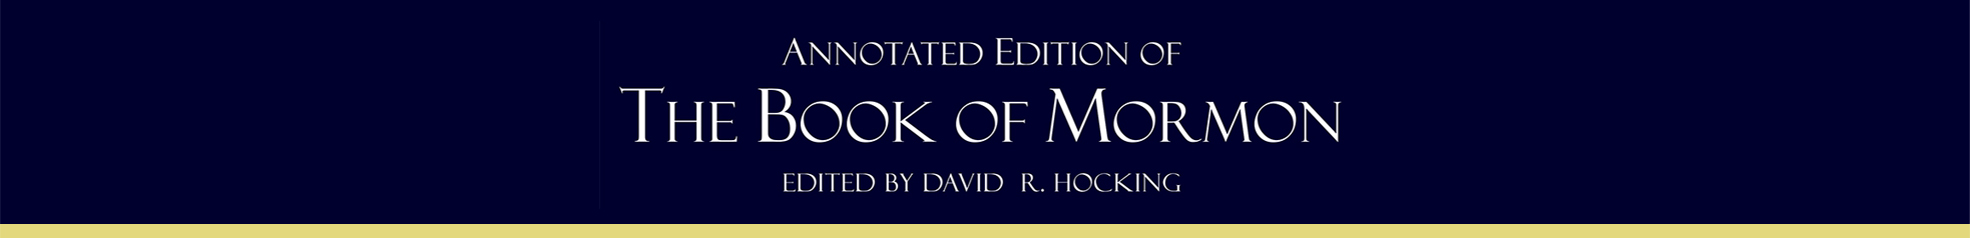 The Annotated Edition of The Book of Mormon